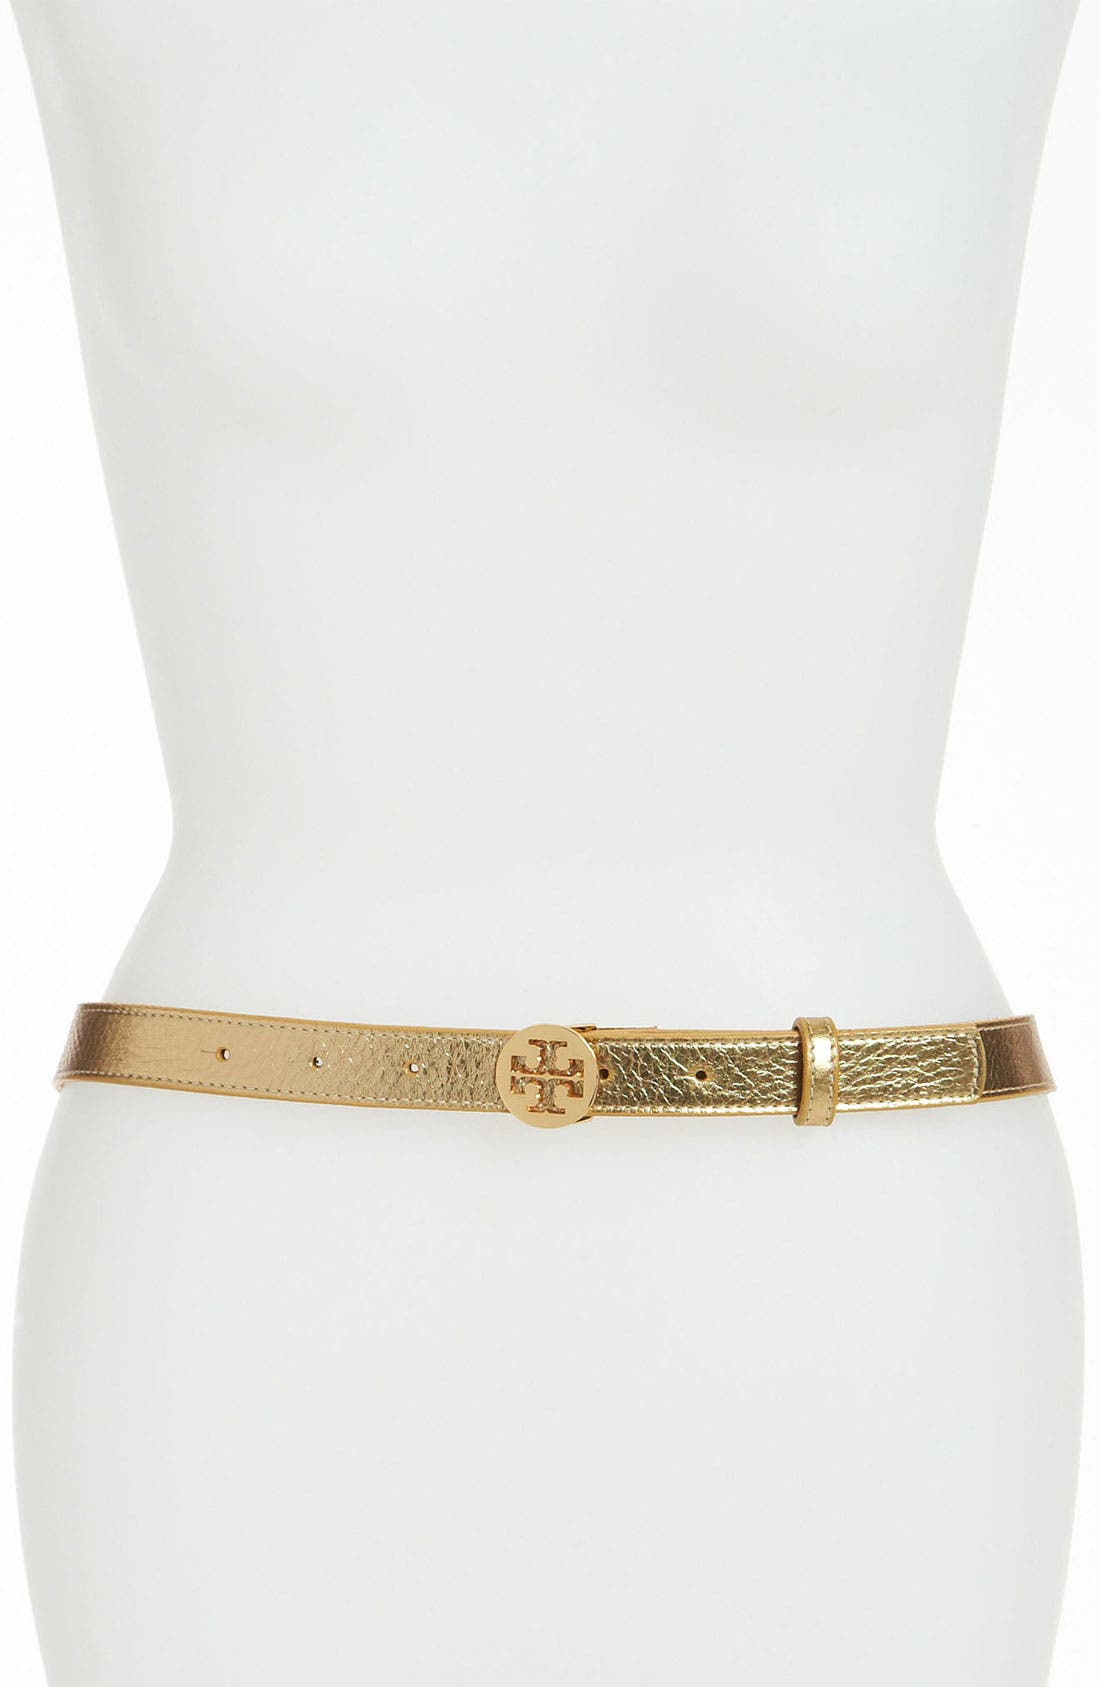 Main Image - Tory Burch 'Tory Logo' Metallic Leather Belt